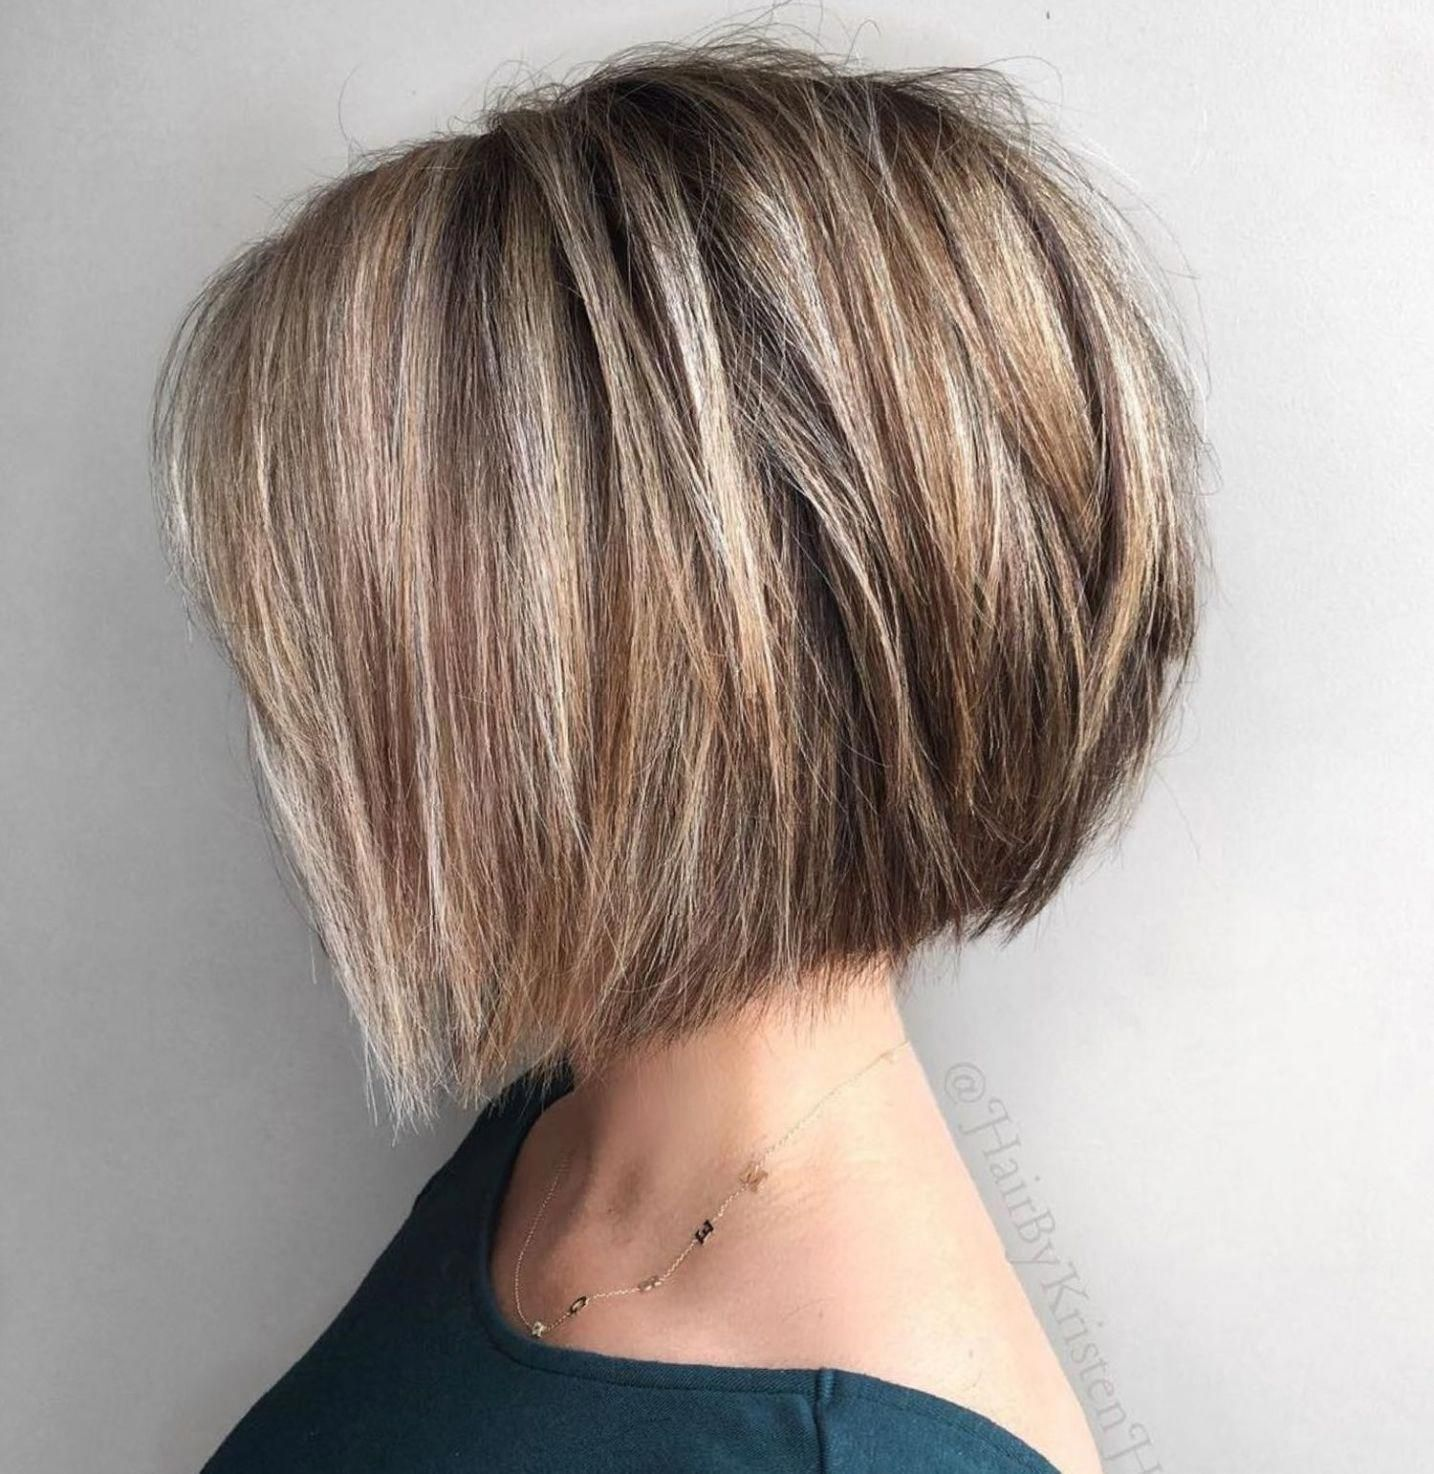 Angled Choppy Bob For Straight Thick Hair Shortbobhairstyles Hair Styles Short Hairstyles For Thick Hair Bob Hairstyles For Thick